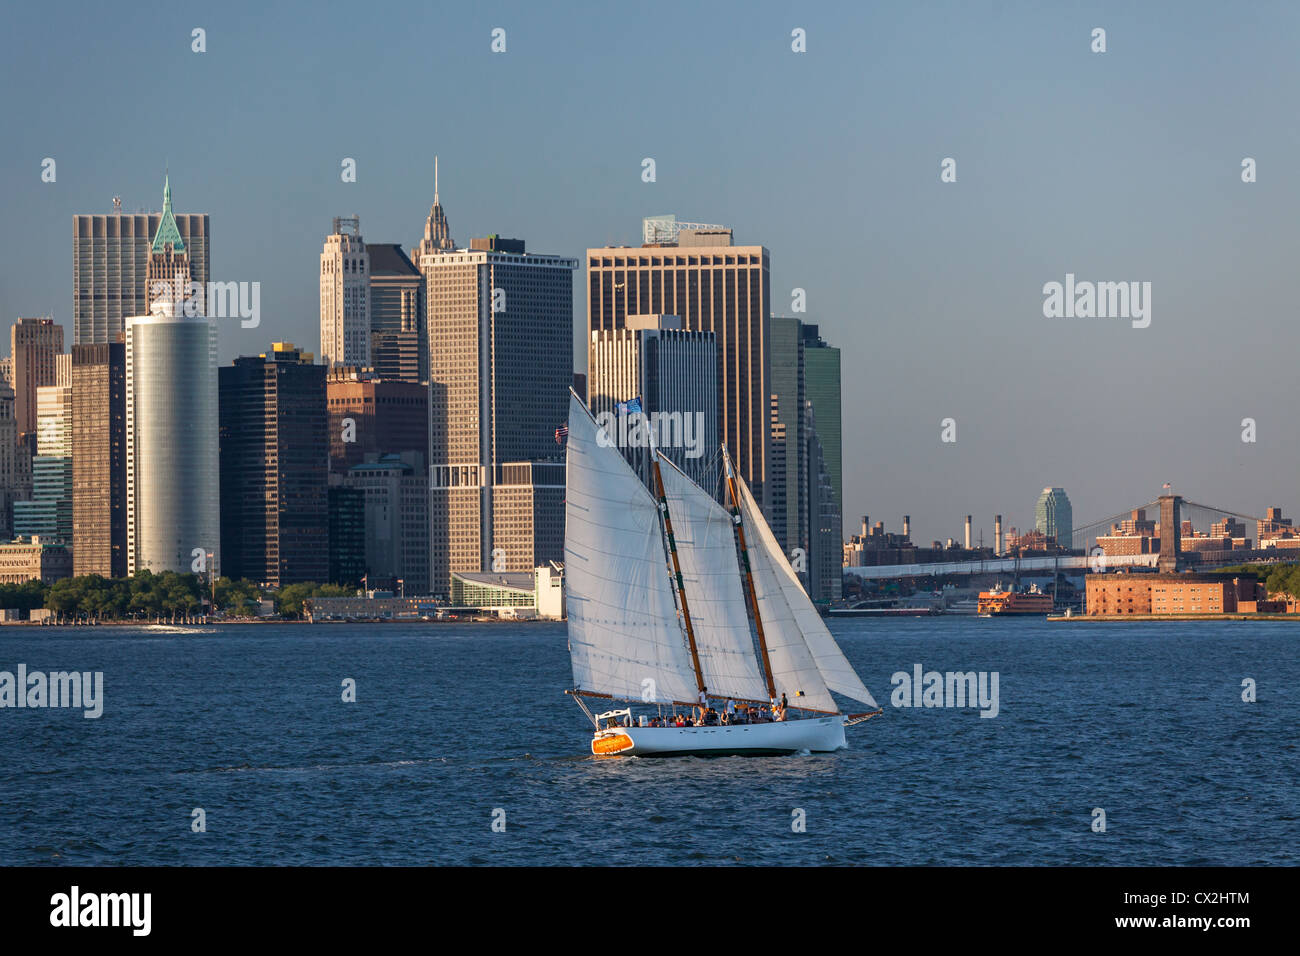 Lower Manhattan Skyline, Sailing Boat, East River,  New York - Stock Image